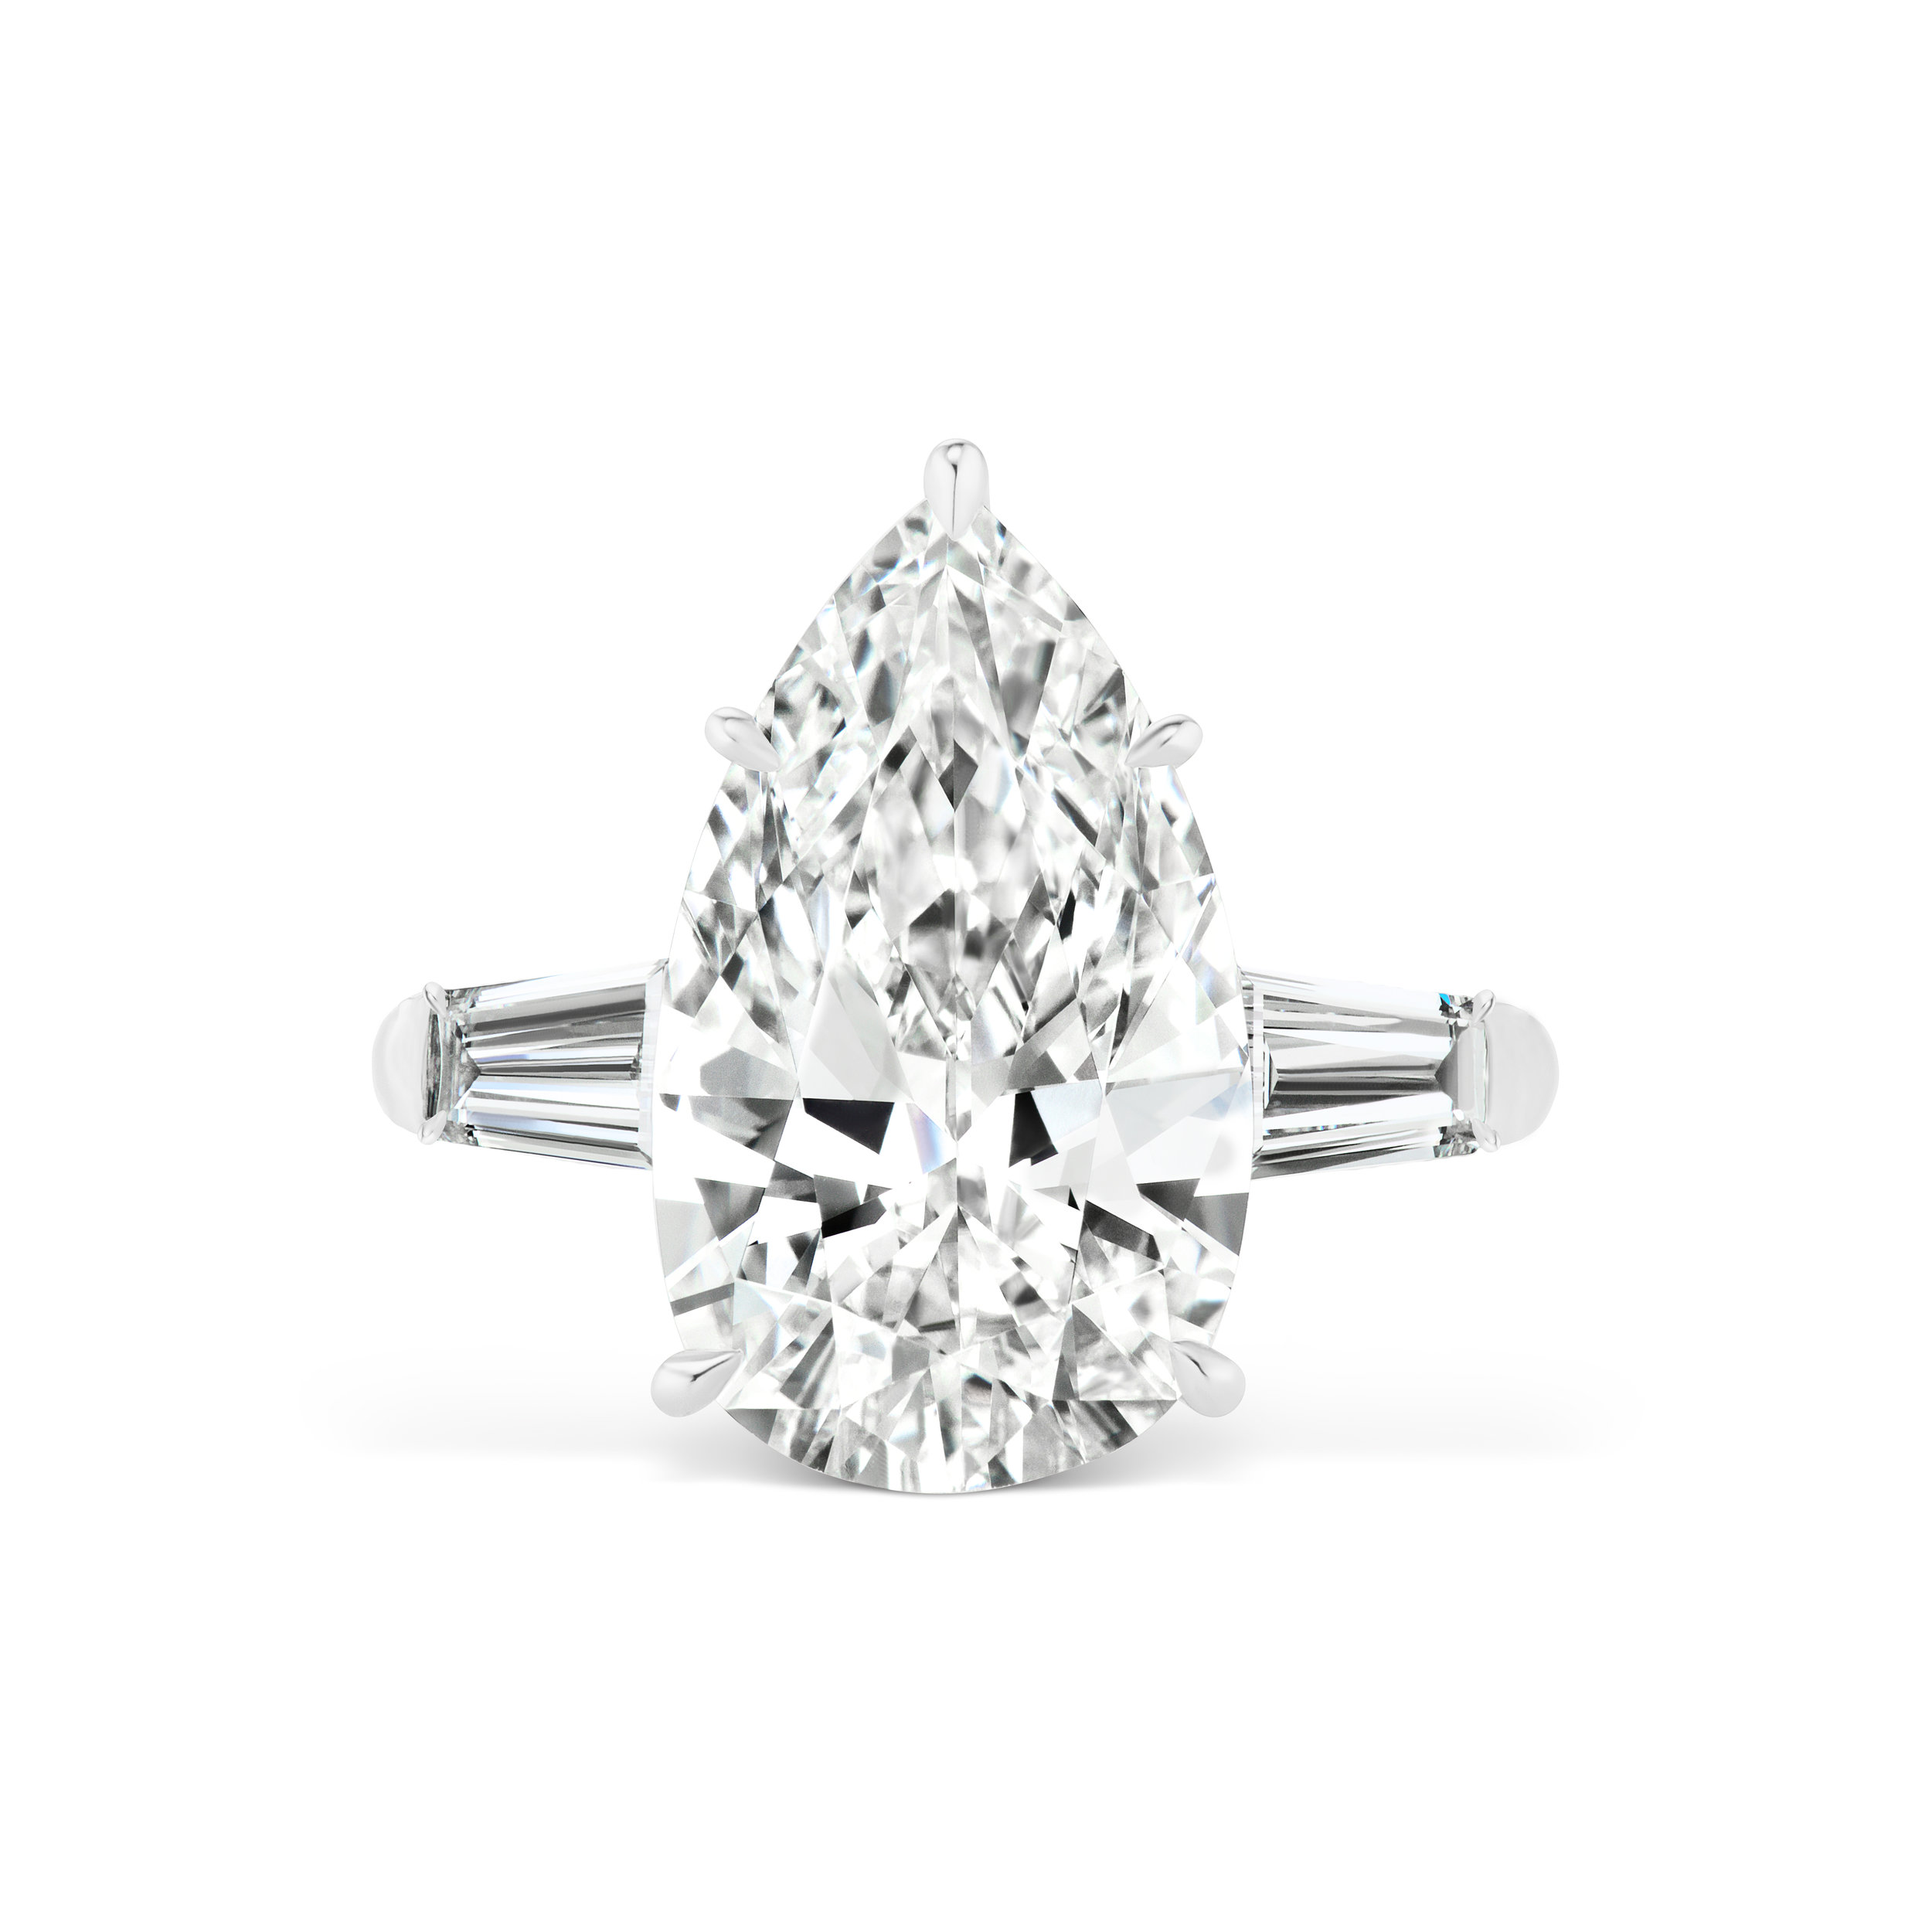 Pear shaped diamond ring with tapered baguette side stones, mounted in platinum.